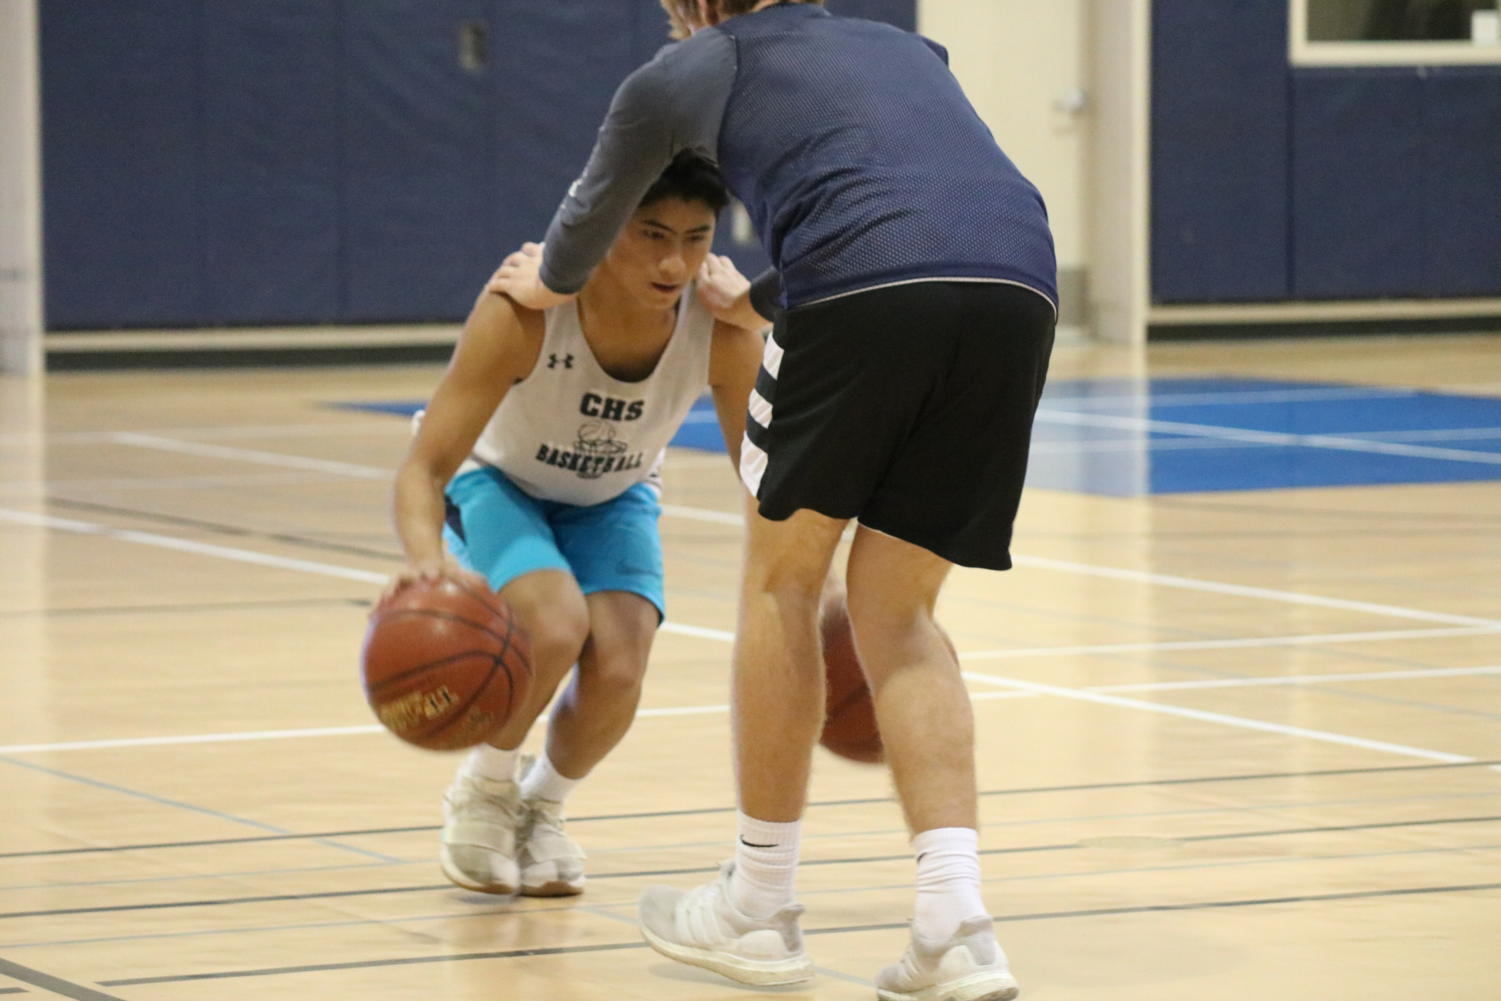 Sophomore guard Jono Sison works on his dribbling skills with freshman Trenton Corteway.